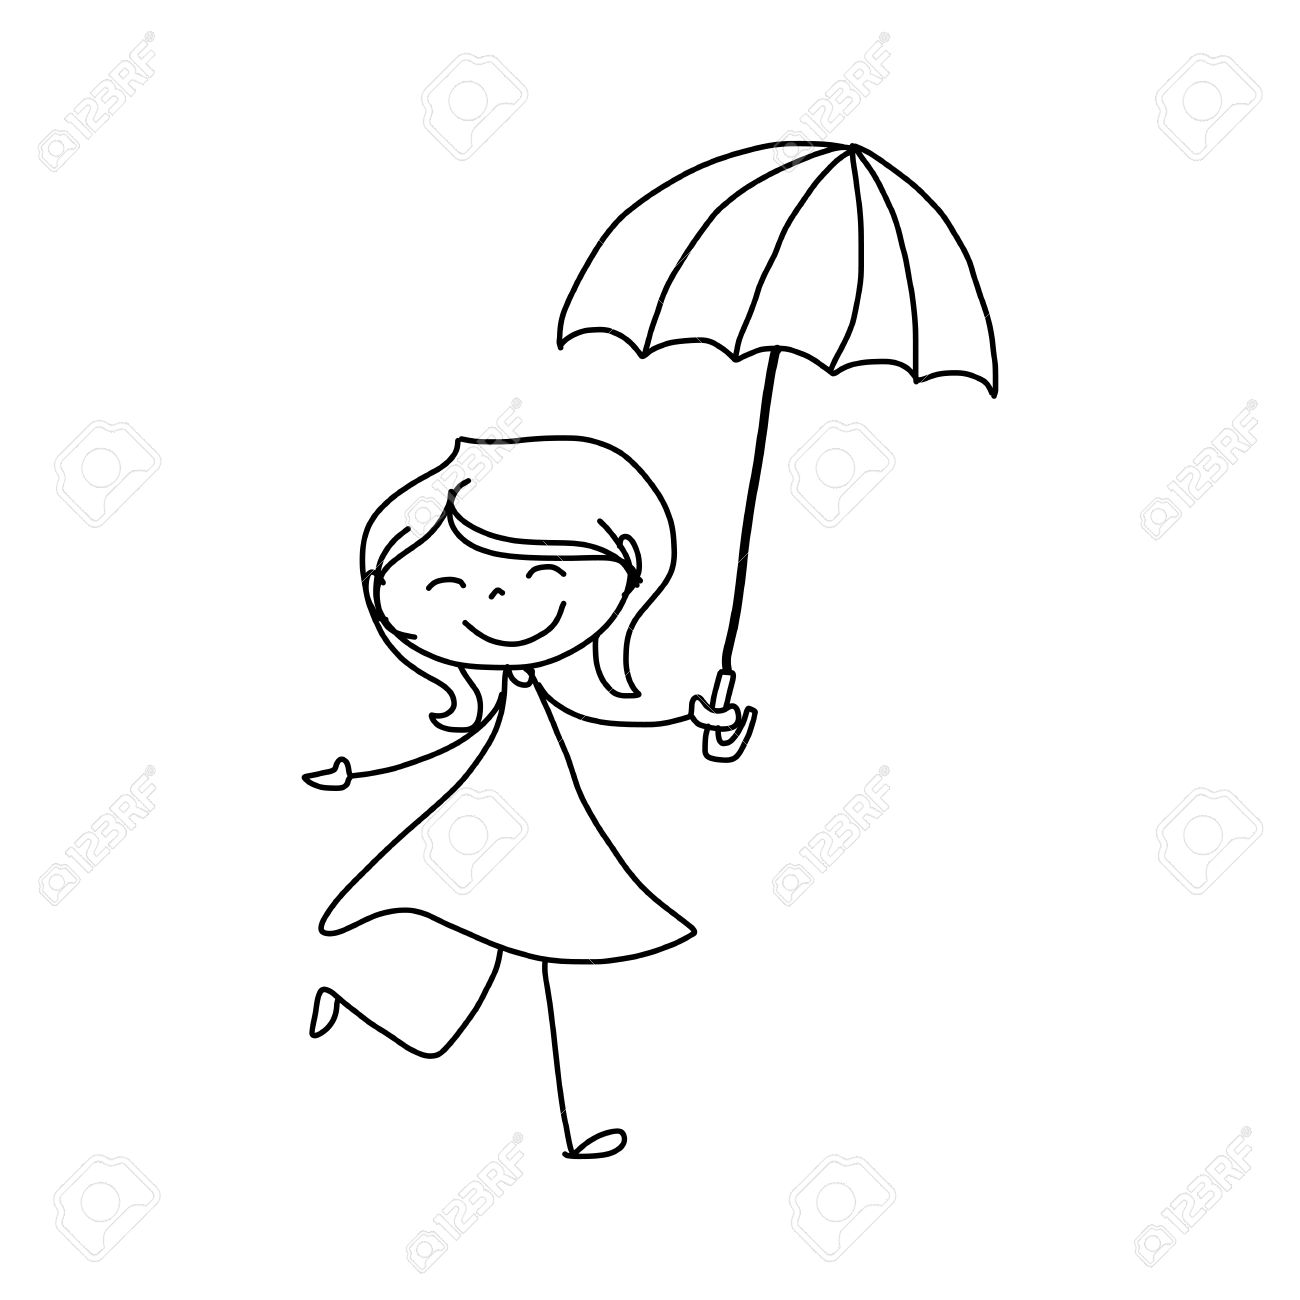 1300x1300 Hand Drawing Cartoon Character Happiness Royalty Free Cliparts